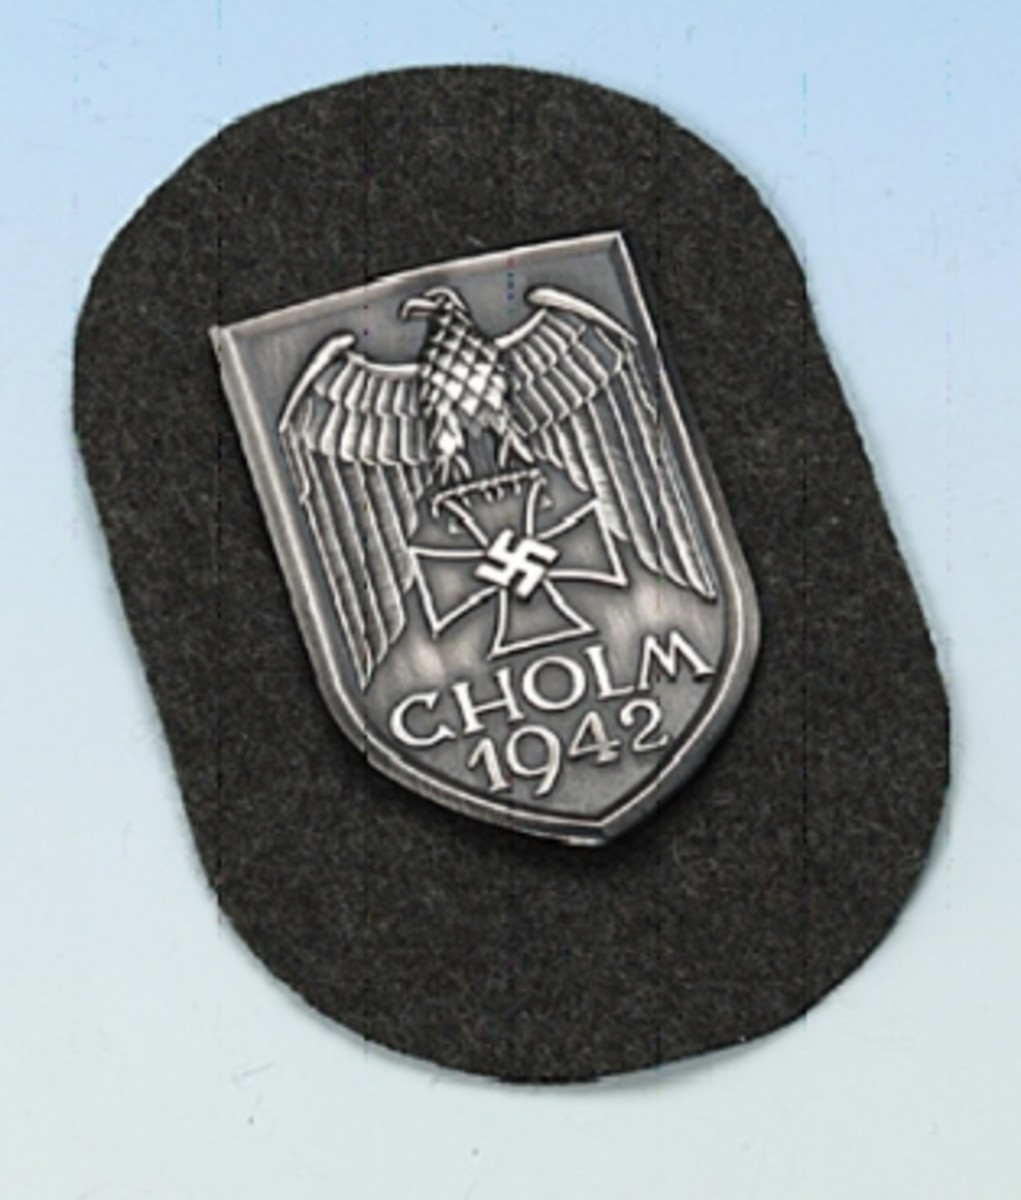 Cholmschild (Cholm Shield)